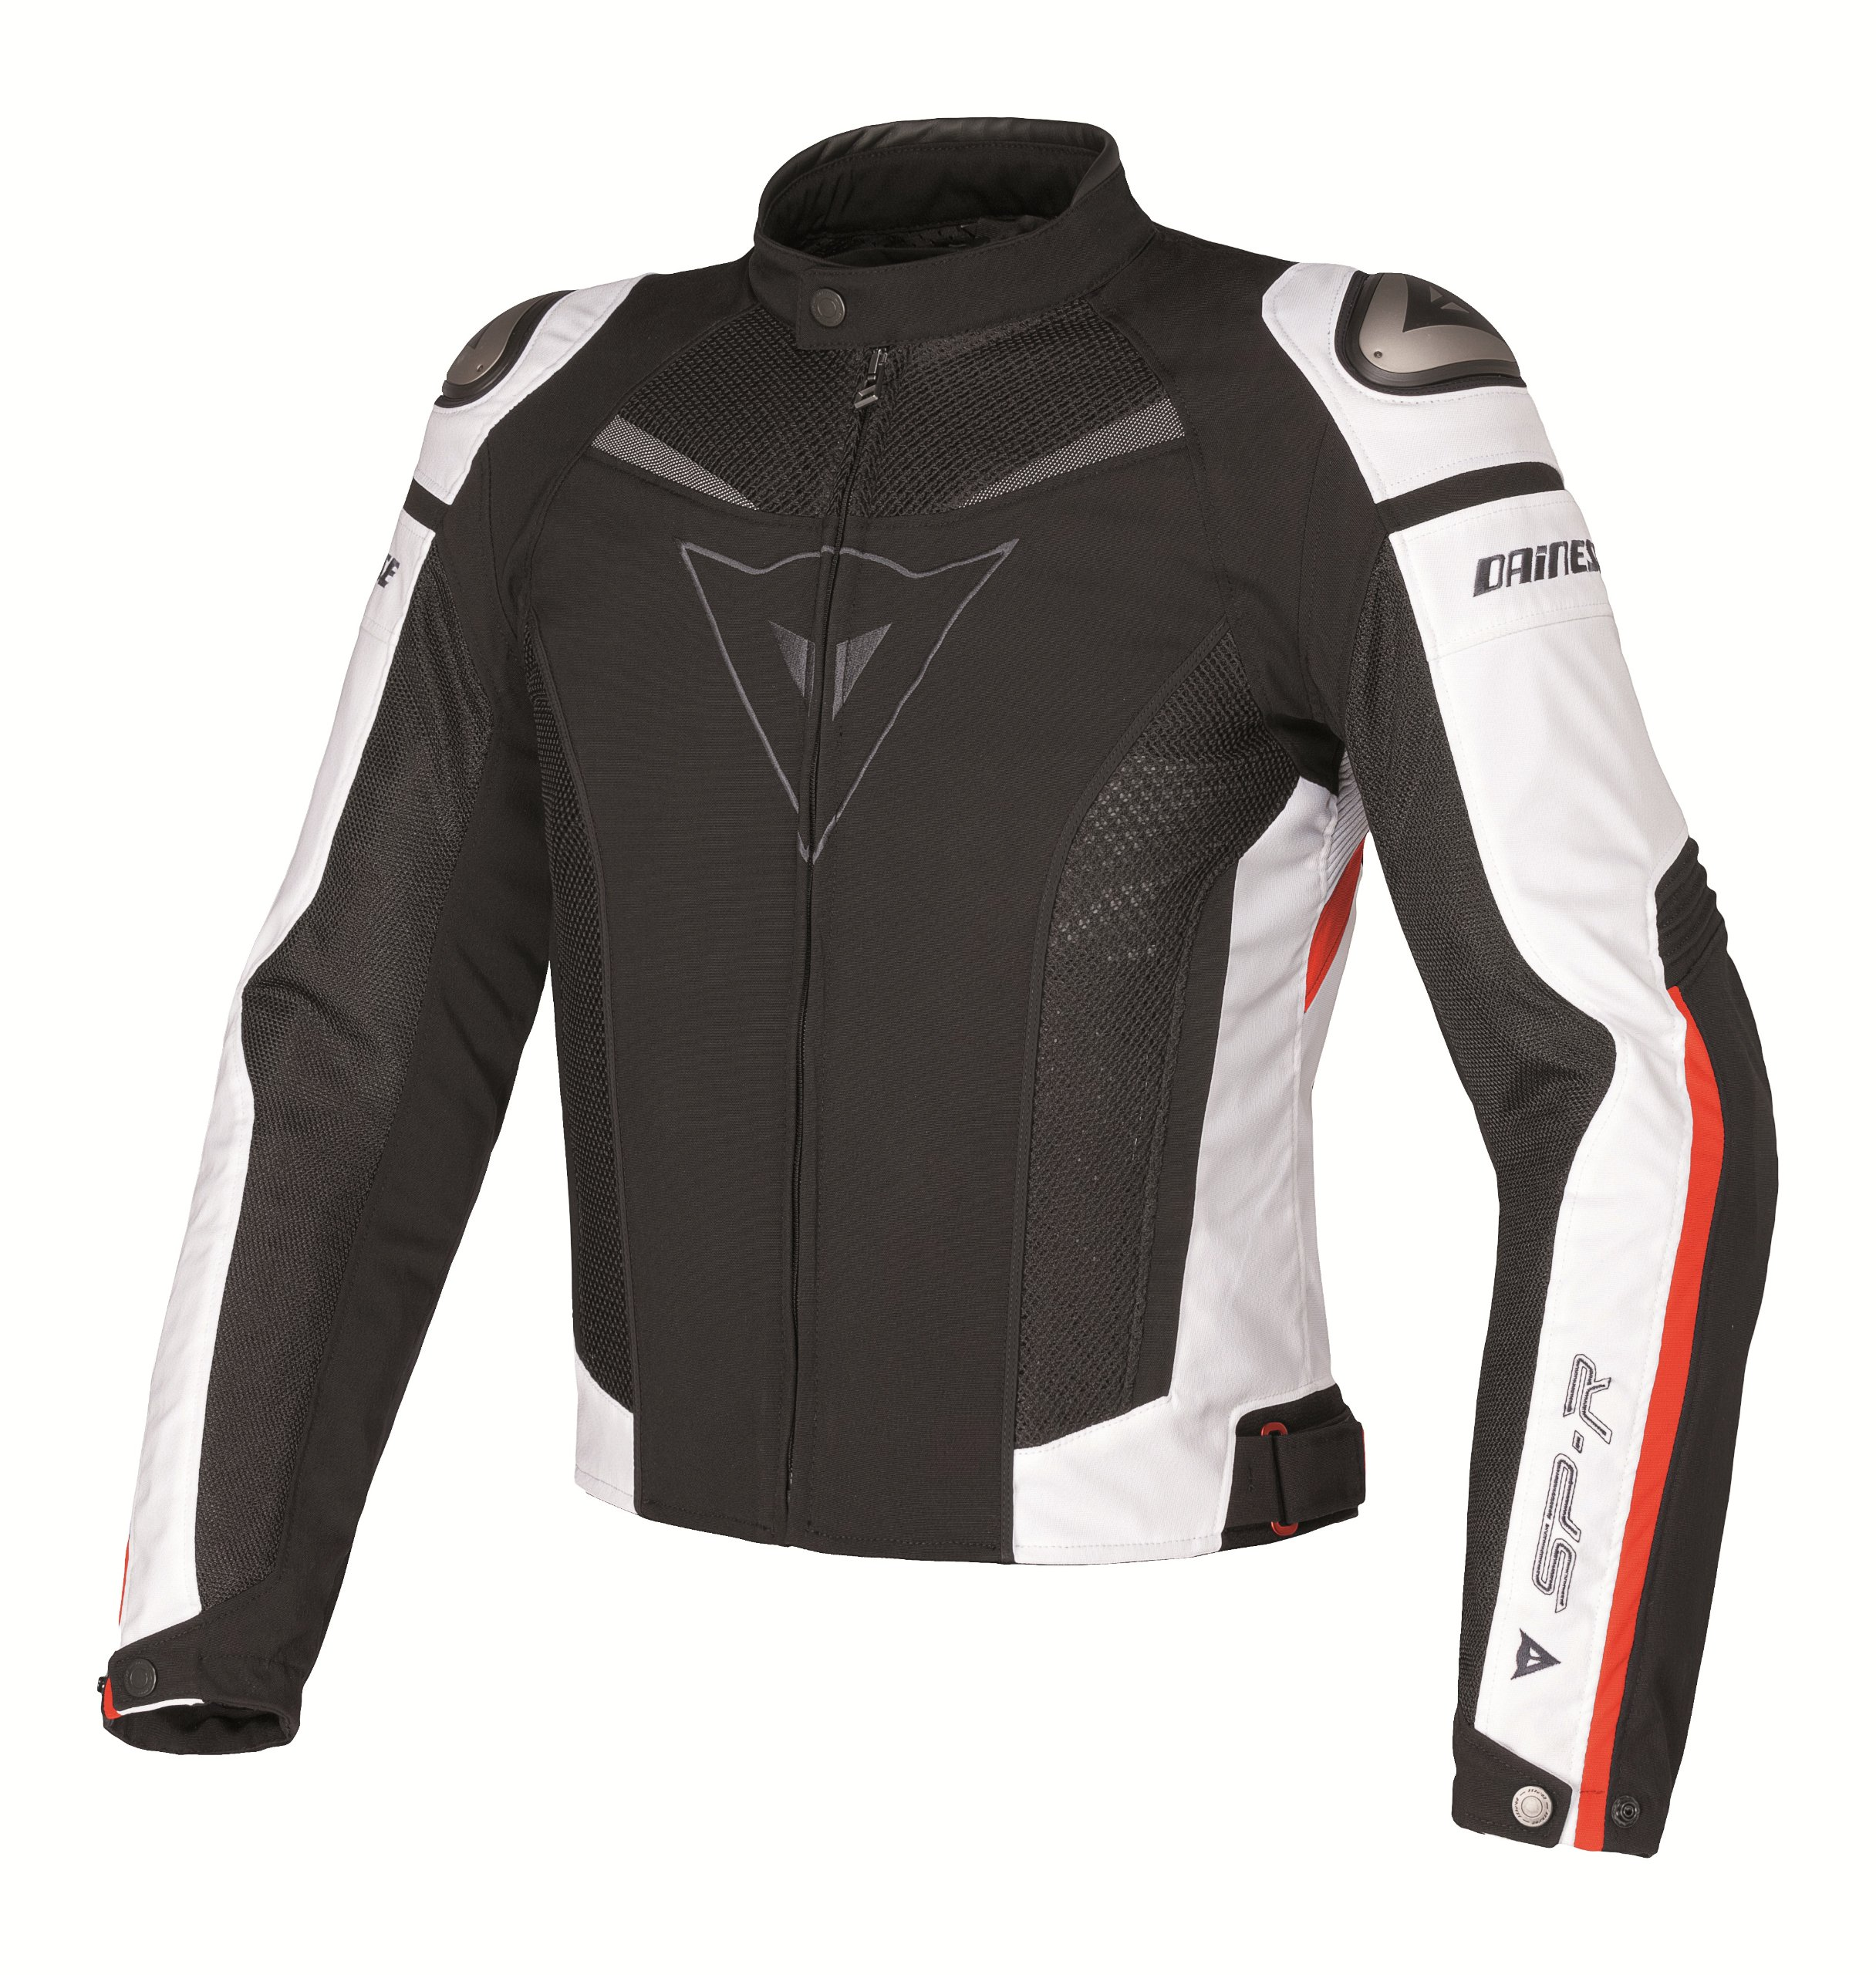 Dainese Super Speed Tex Textile Jacket (Euro 60/ US 50, Black/White/Red)